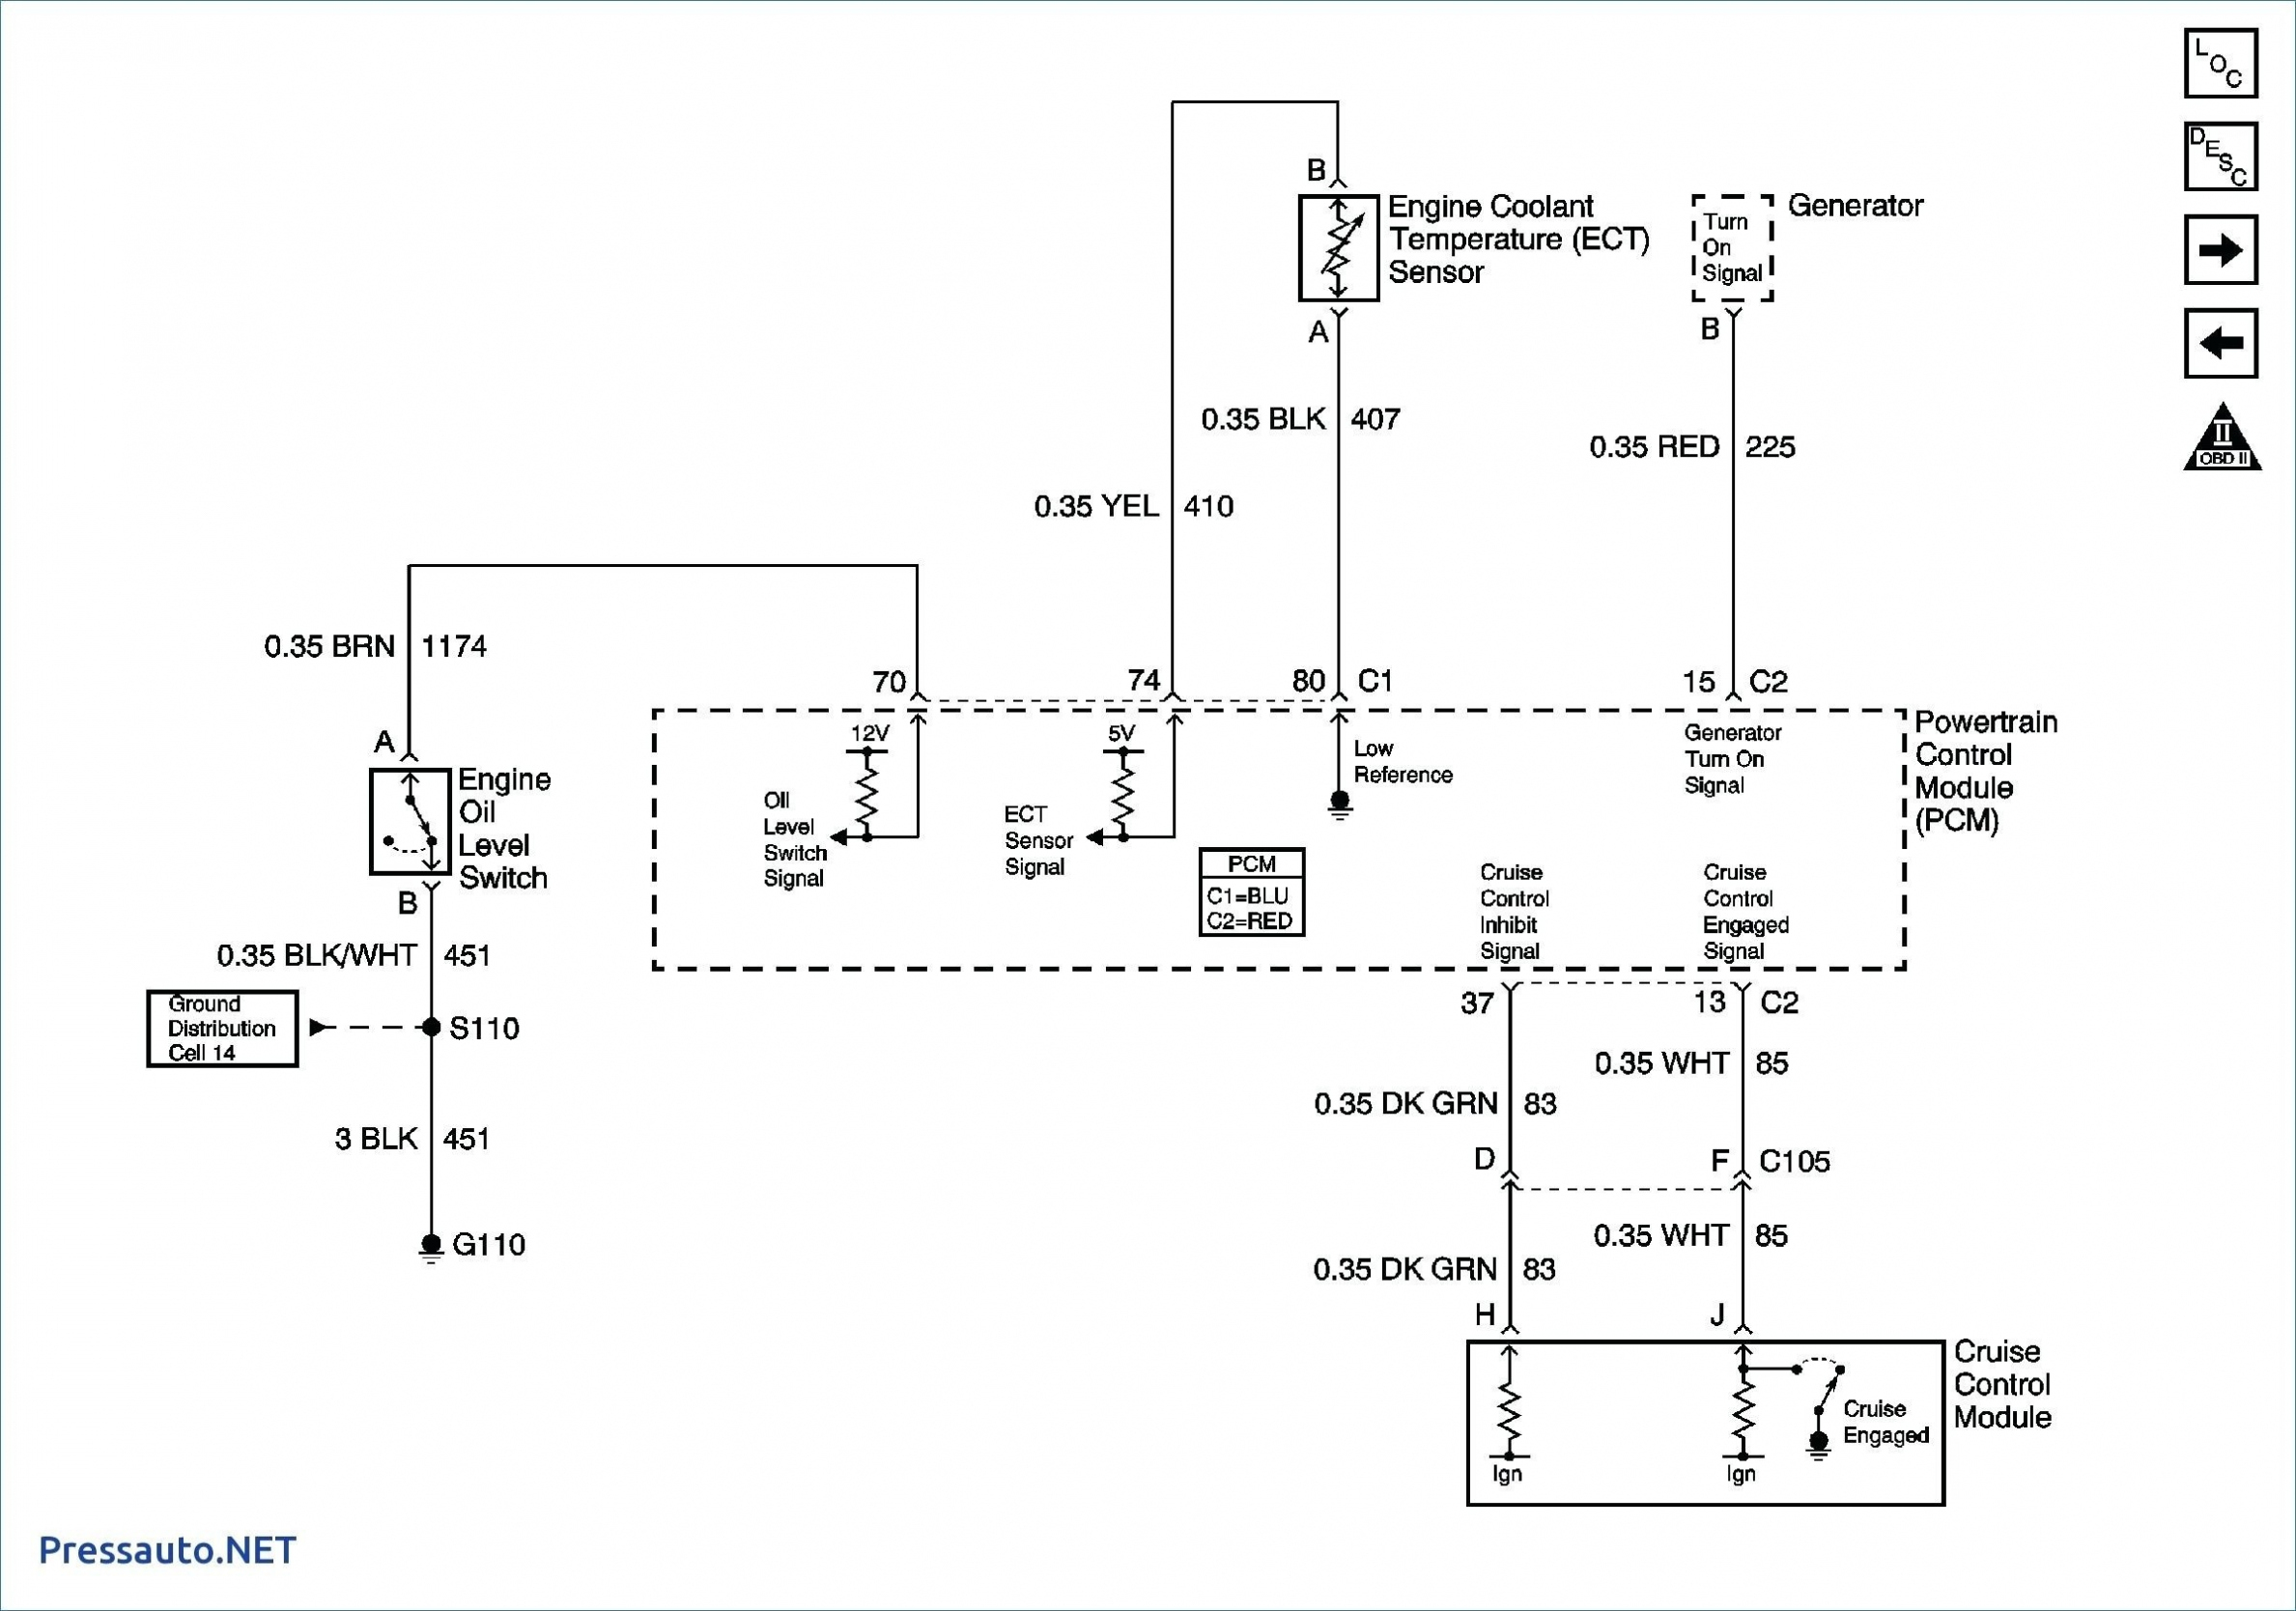 Wiring Diagram For Water Pump Pressure Switch New Enchanting Well - Well Pump Pressure Switch Wiring Diagram